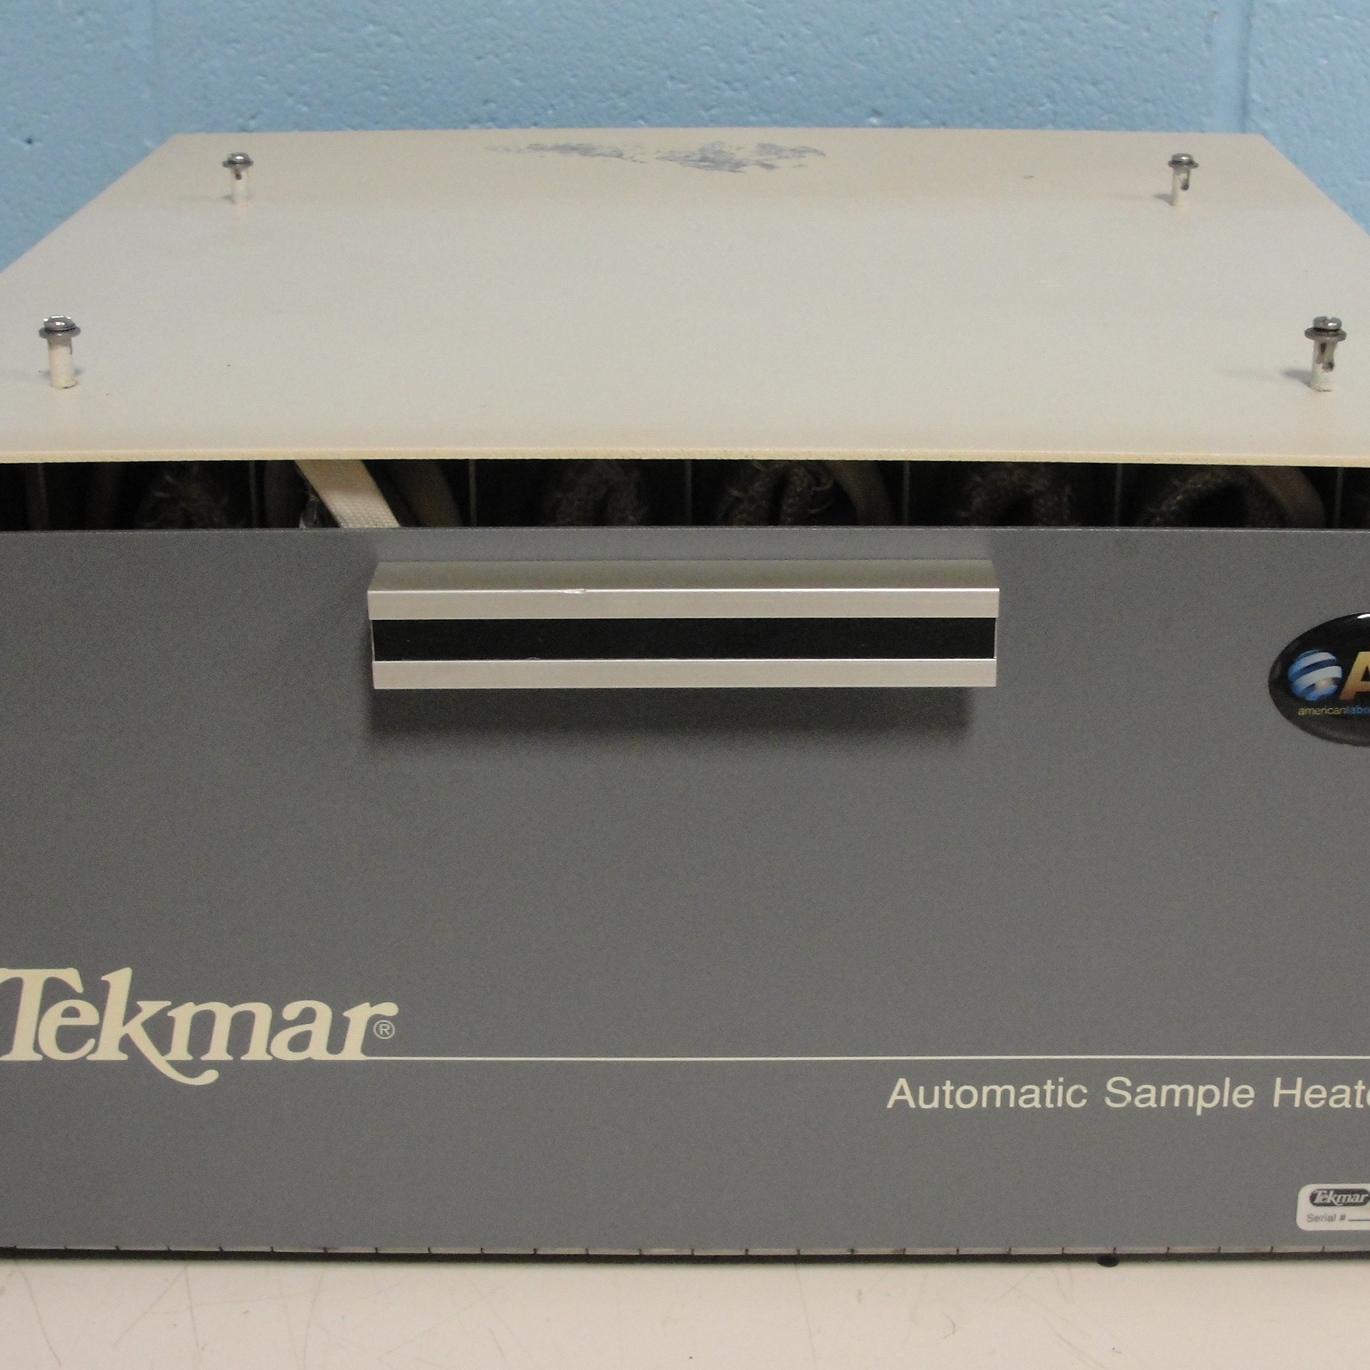 Tekmar Automatic Sample Heater Image